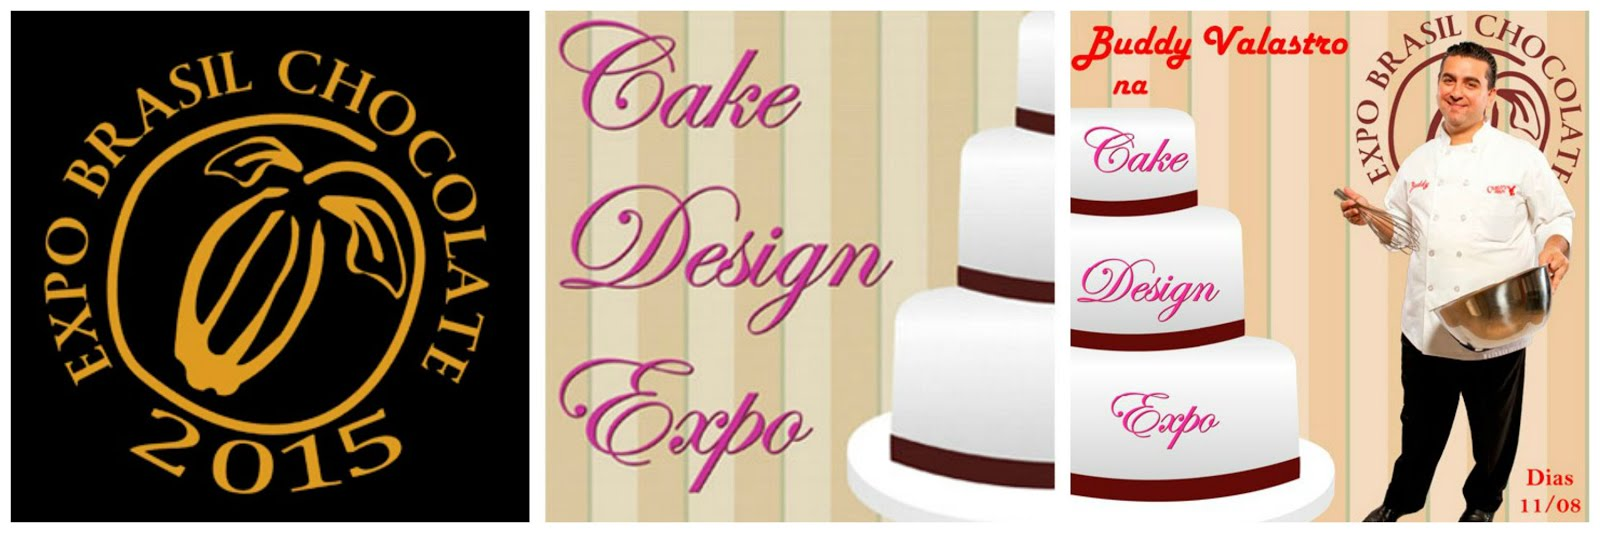 Expo Brasil Chocolate 2015 e Cake Design Expo